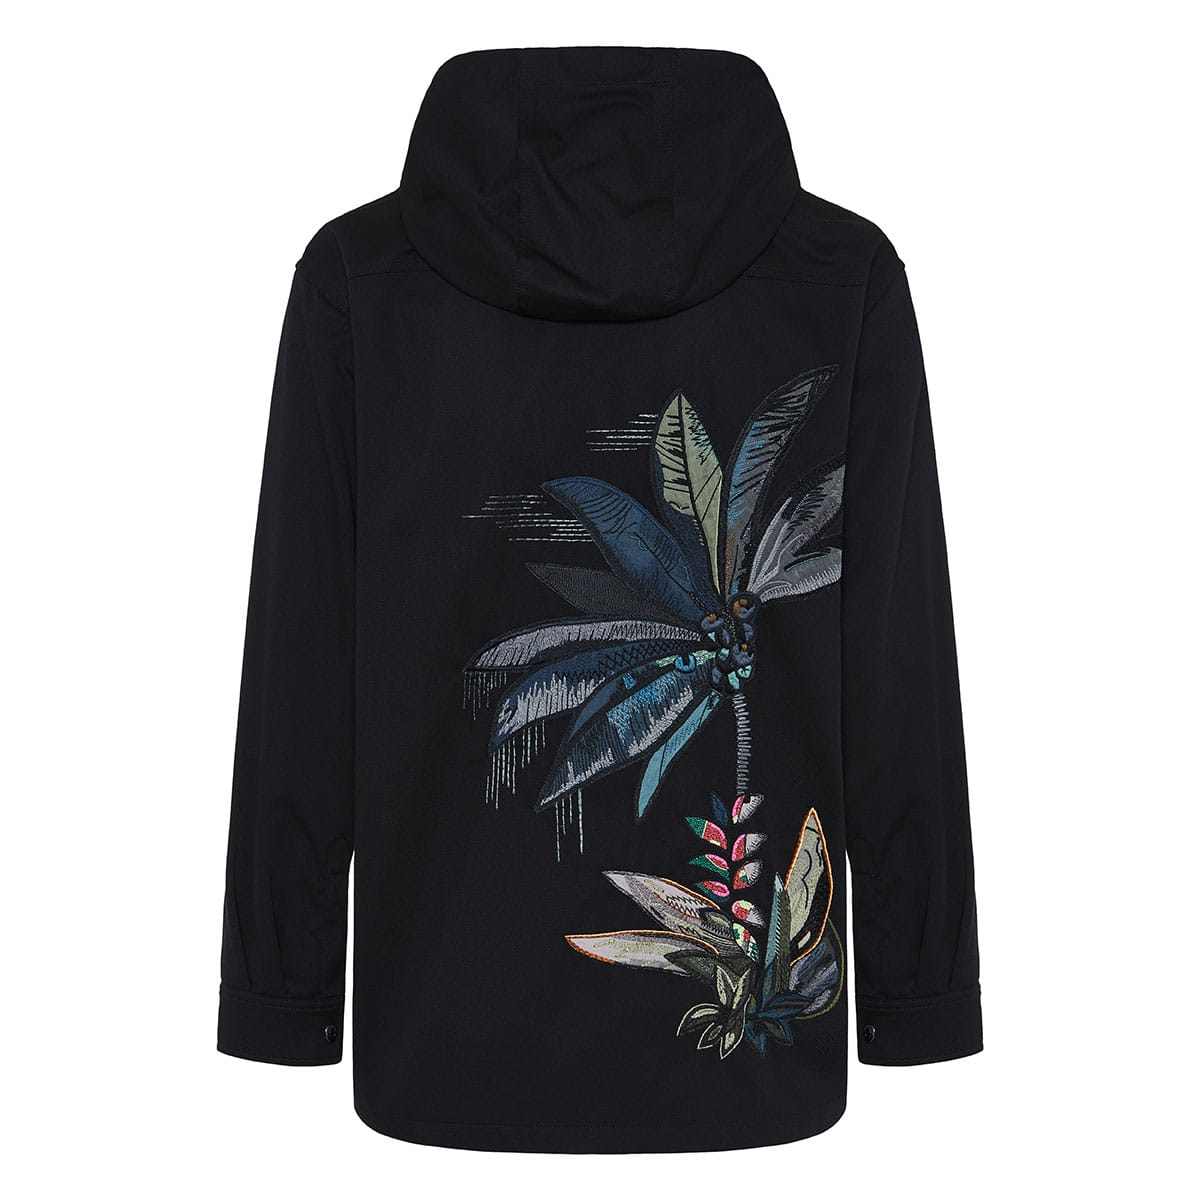 Mural Jungle embroidered pea coat